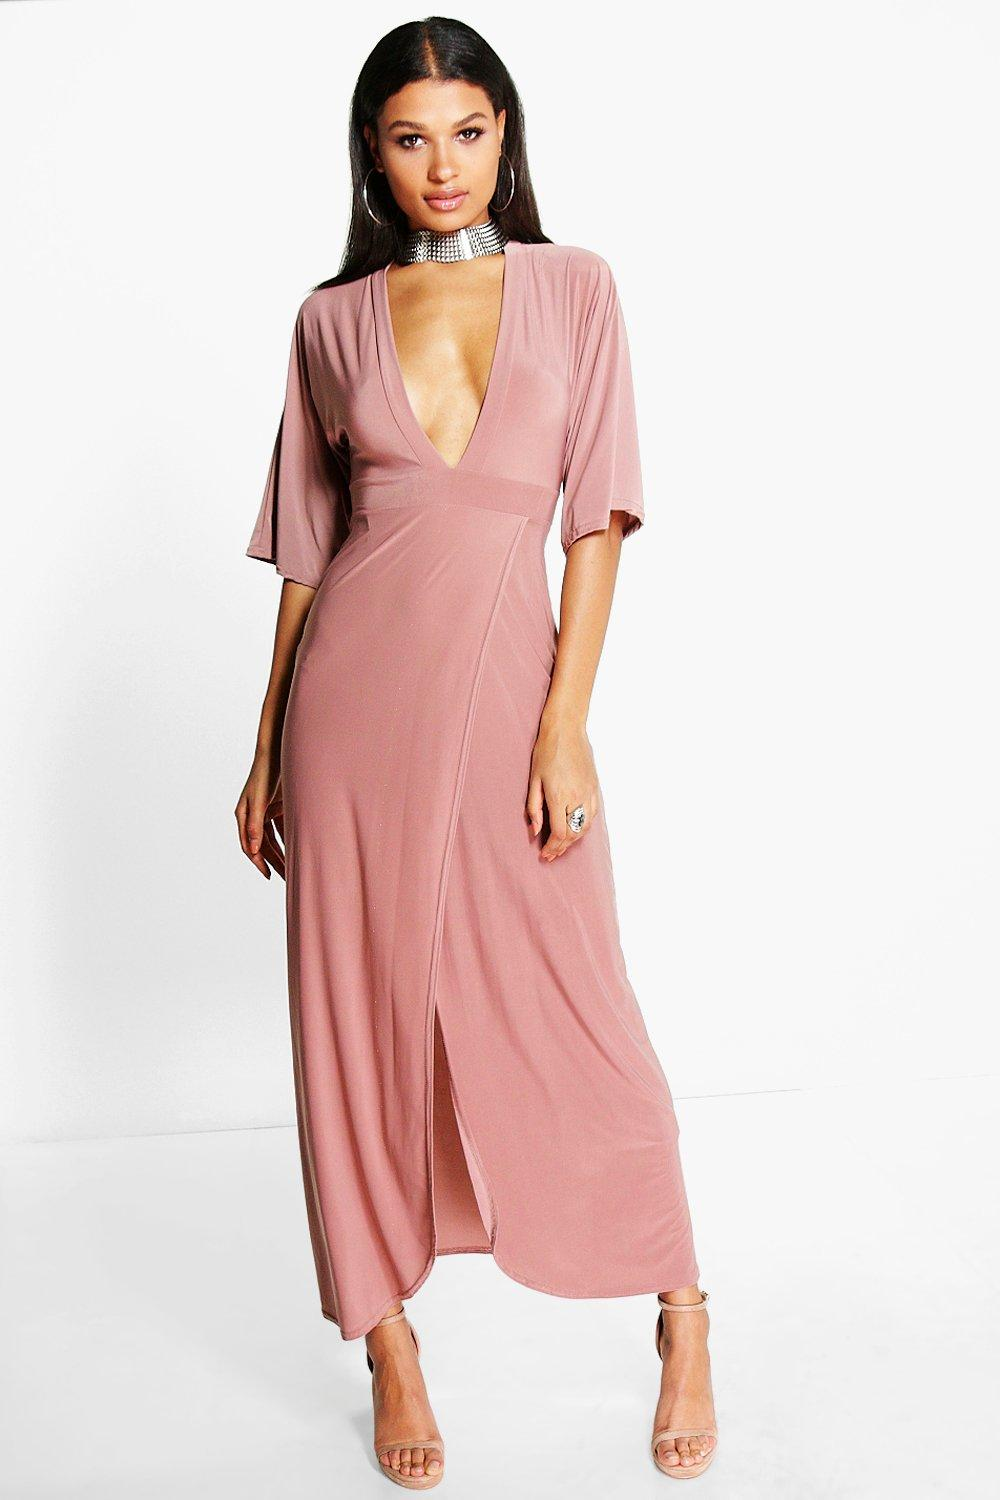 Kimono Open Back Tie Detail Maxi Dress rose